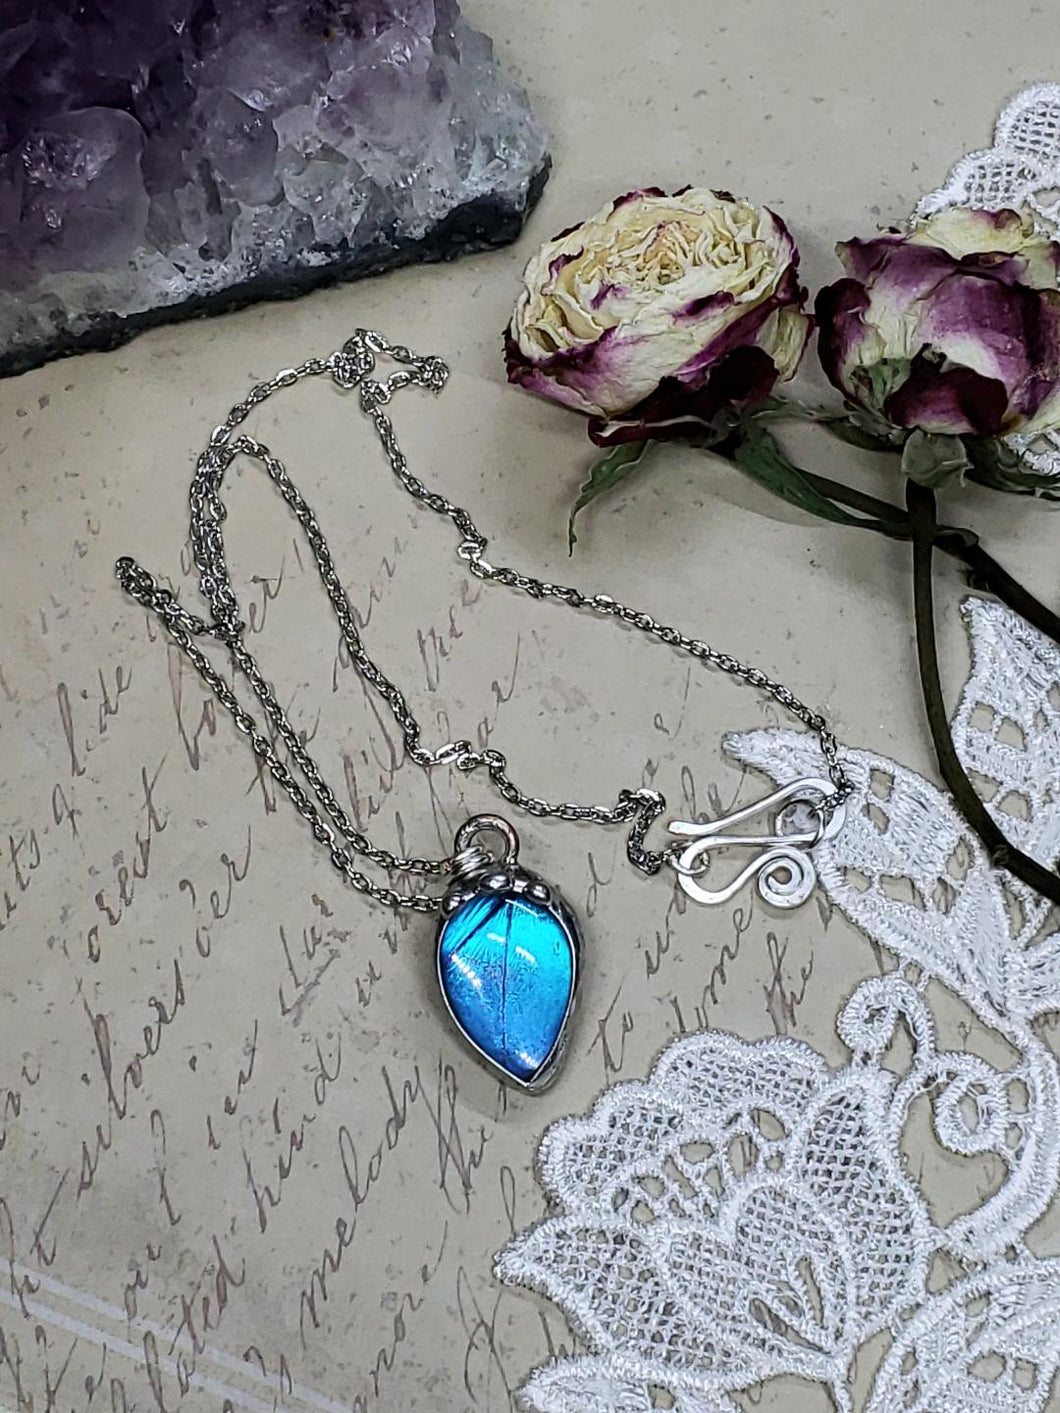 Blue Morpho Butterfly Necklace - Two-Sided Pear Shape in Silver - The Steampunk Butterfly